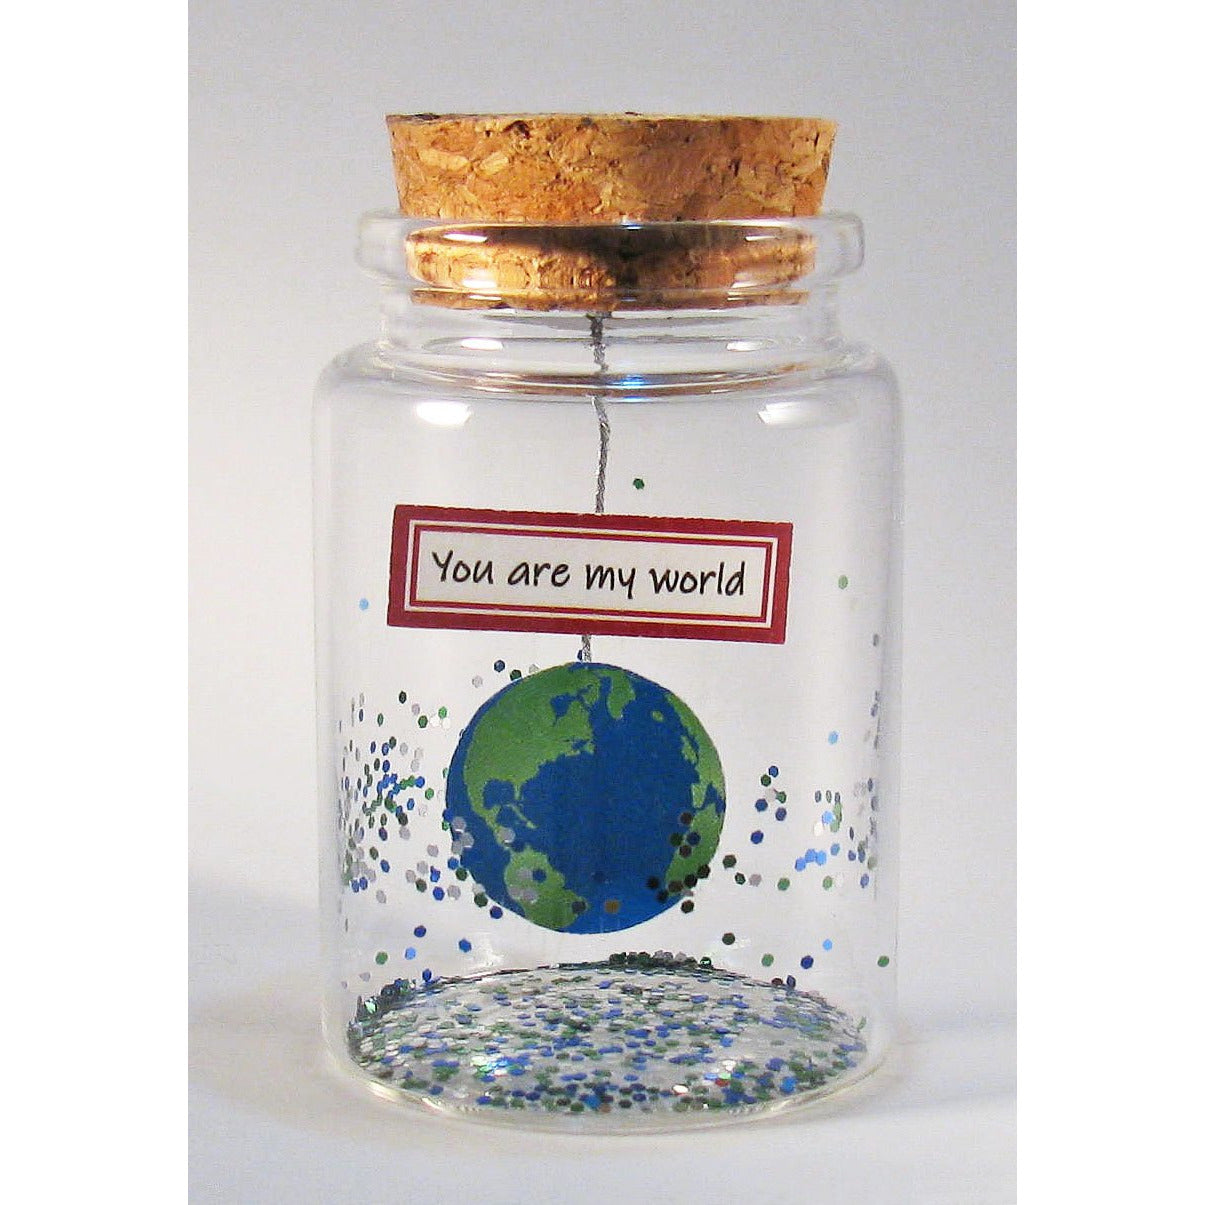 'You are my world' Message in a Bottle